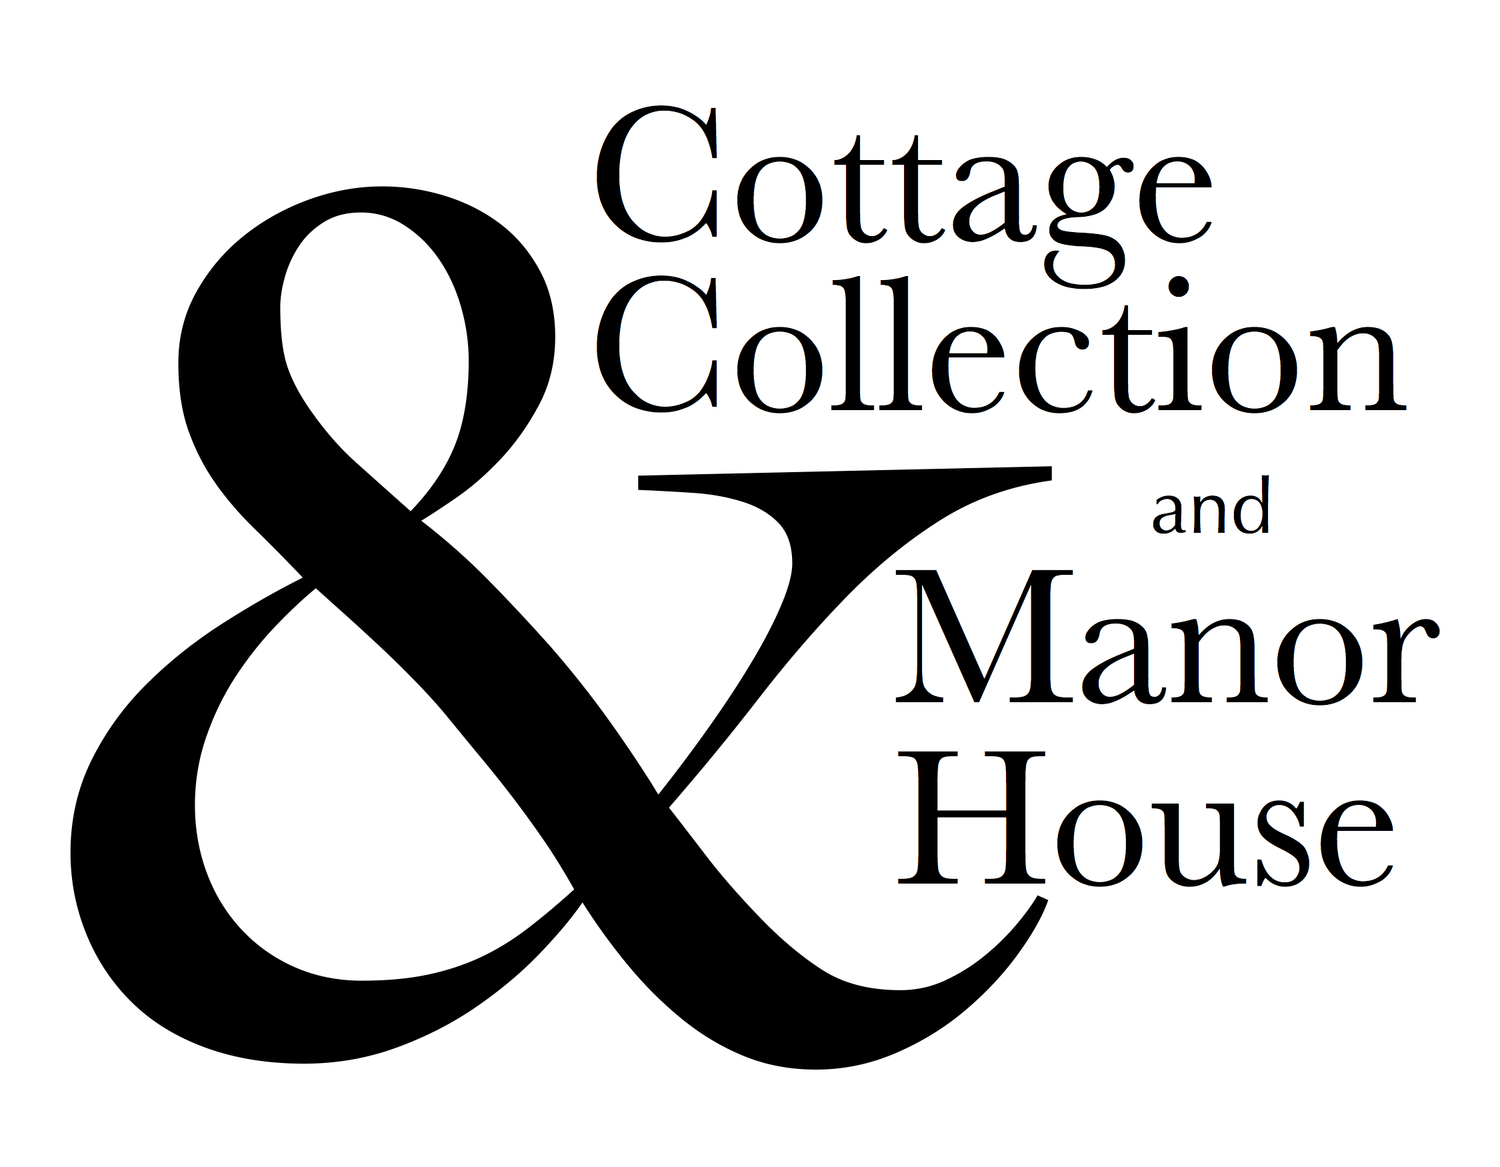 Cottage Collection and Manor House